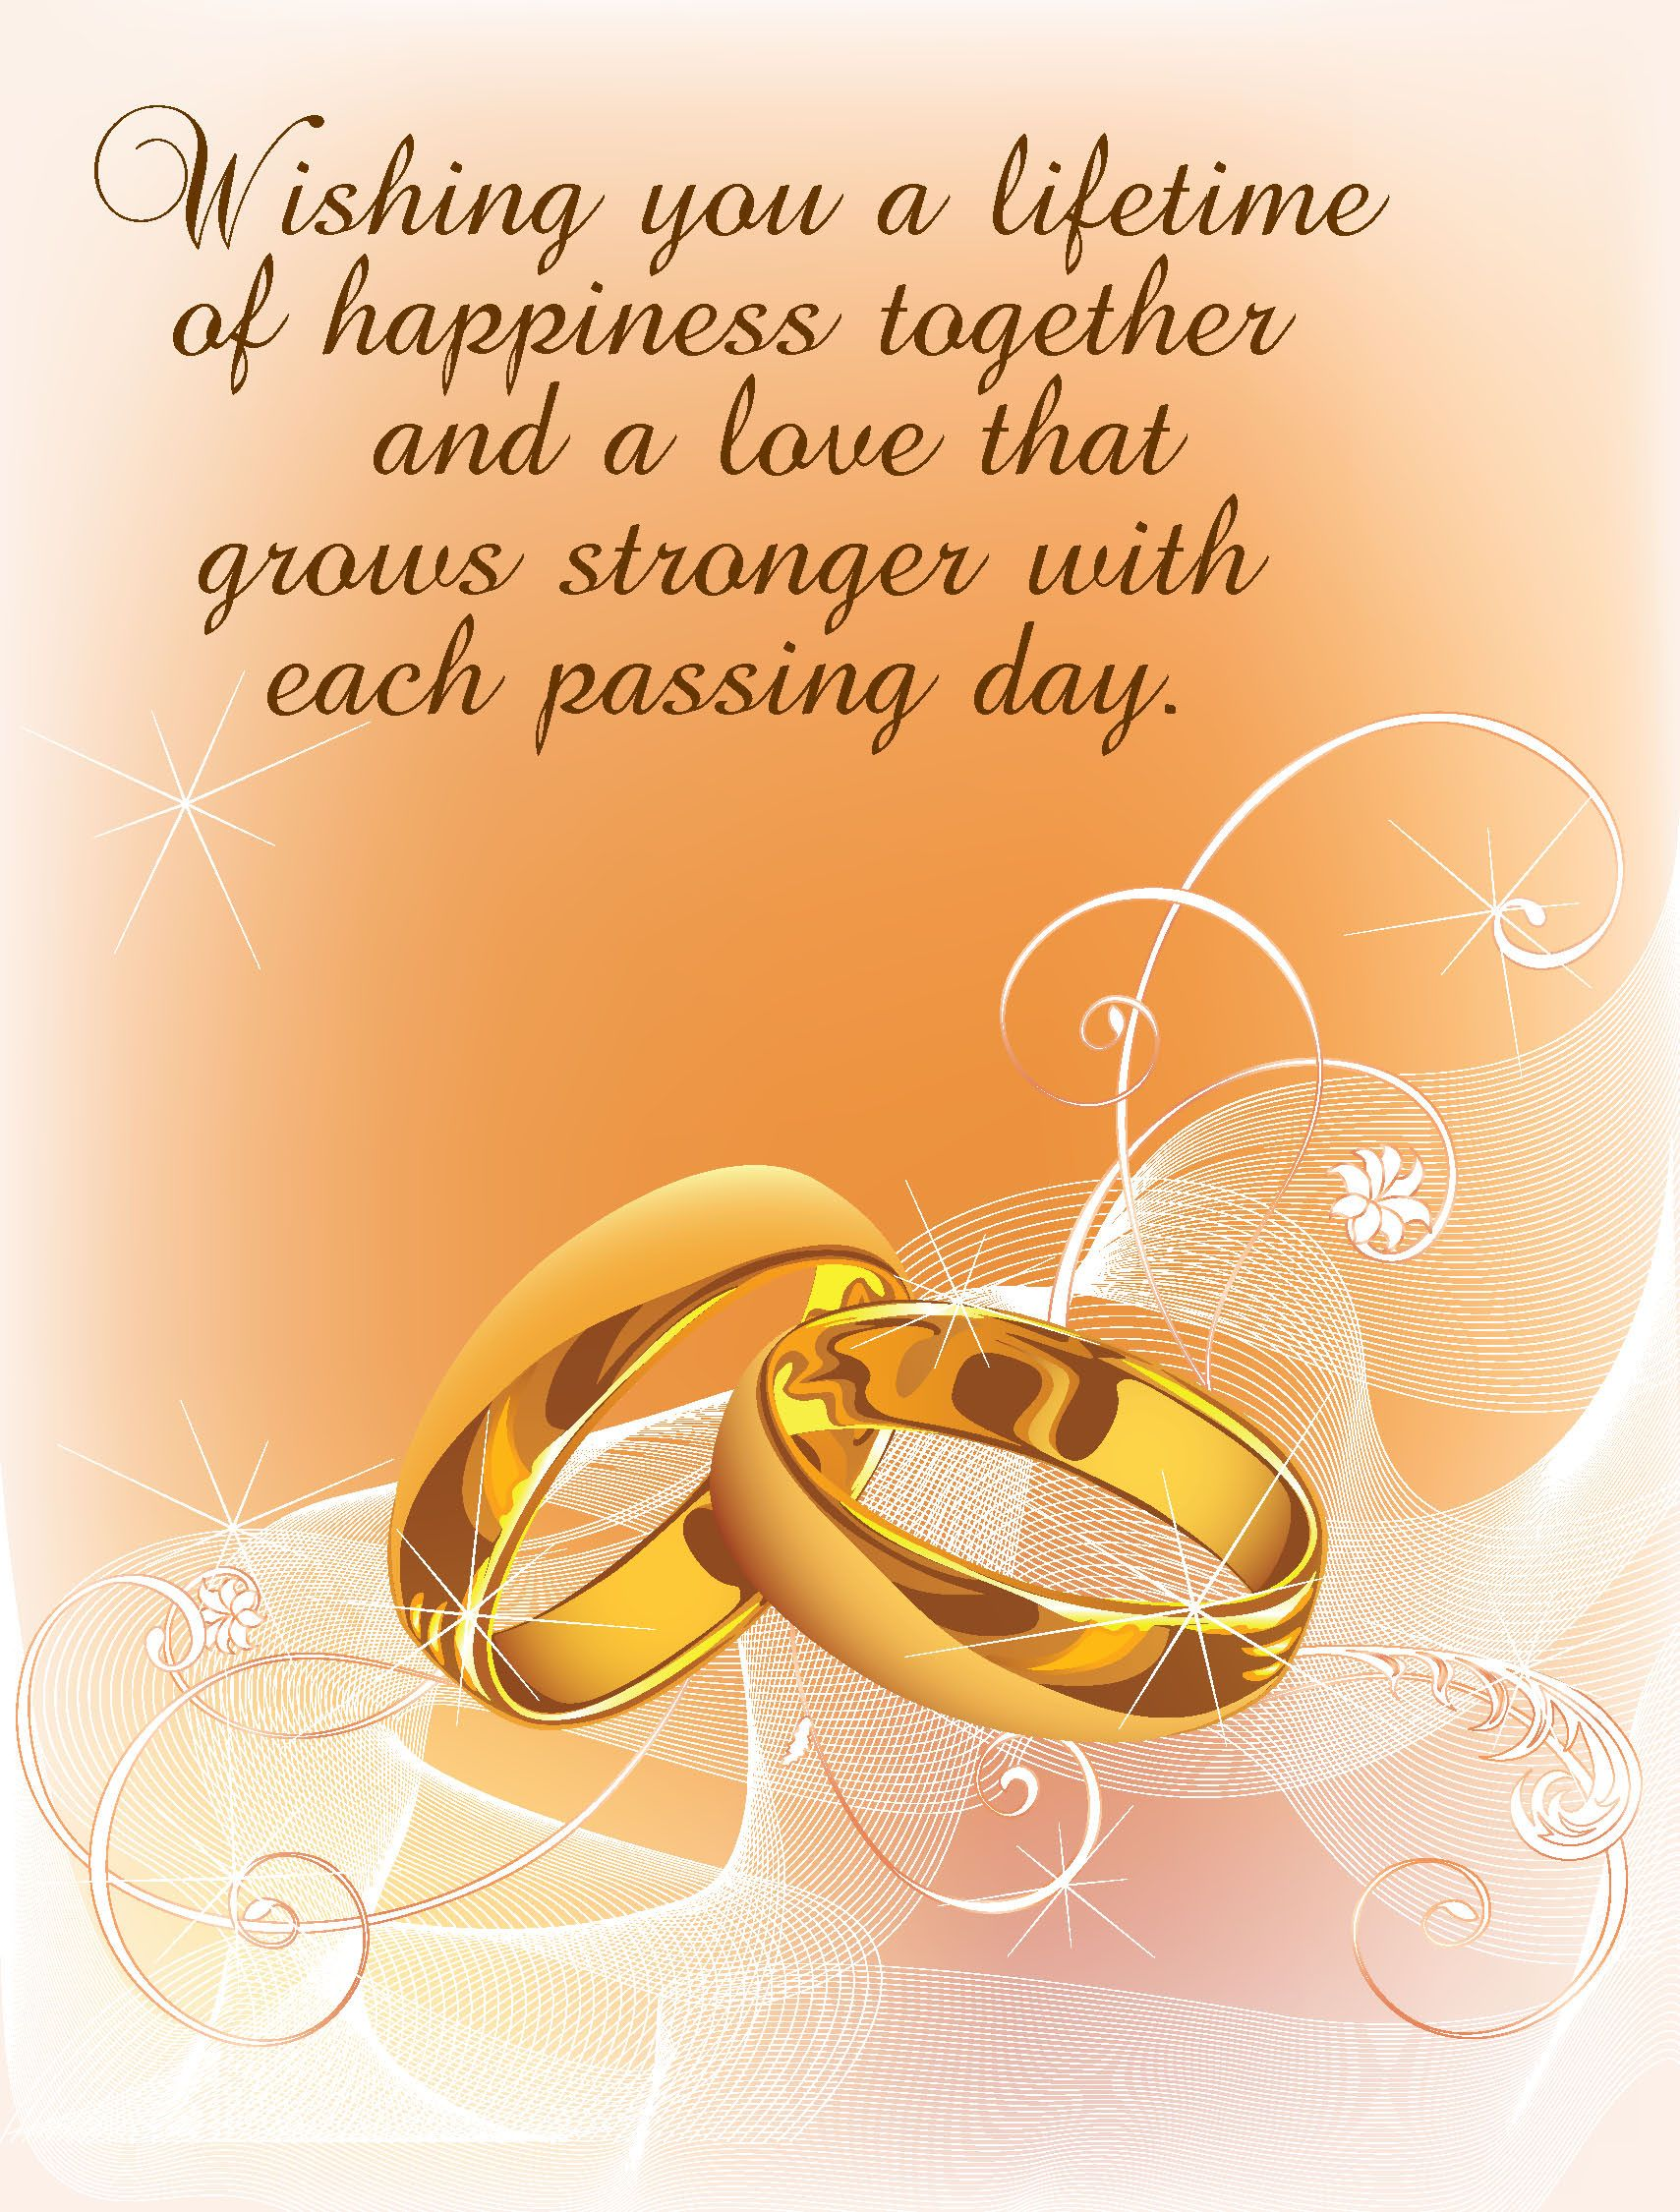 collection of hundreds of free wedding message from all over the